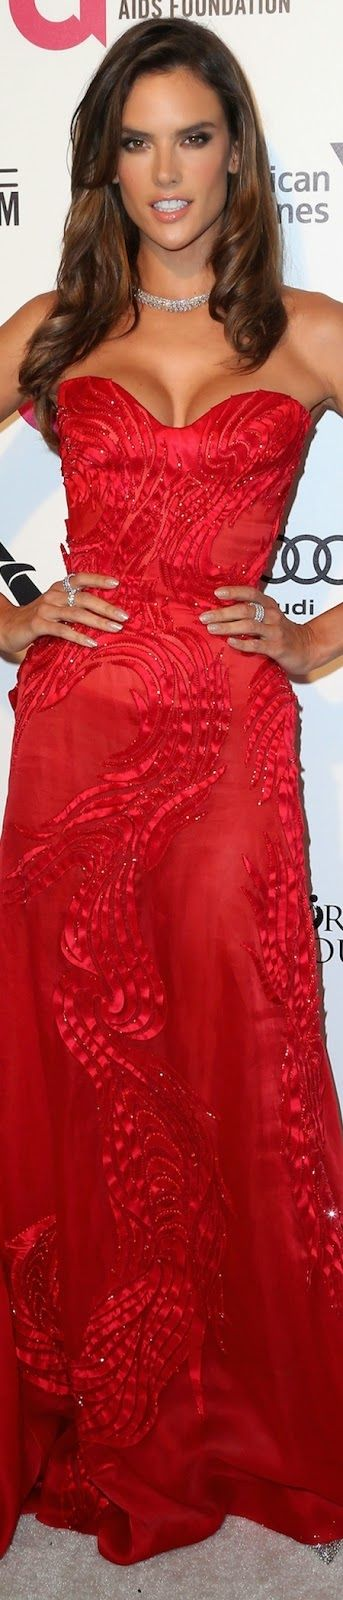 Alessandra Ambrosio in a red strapless gown by Atelier Versace